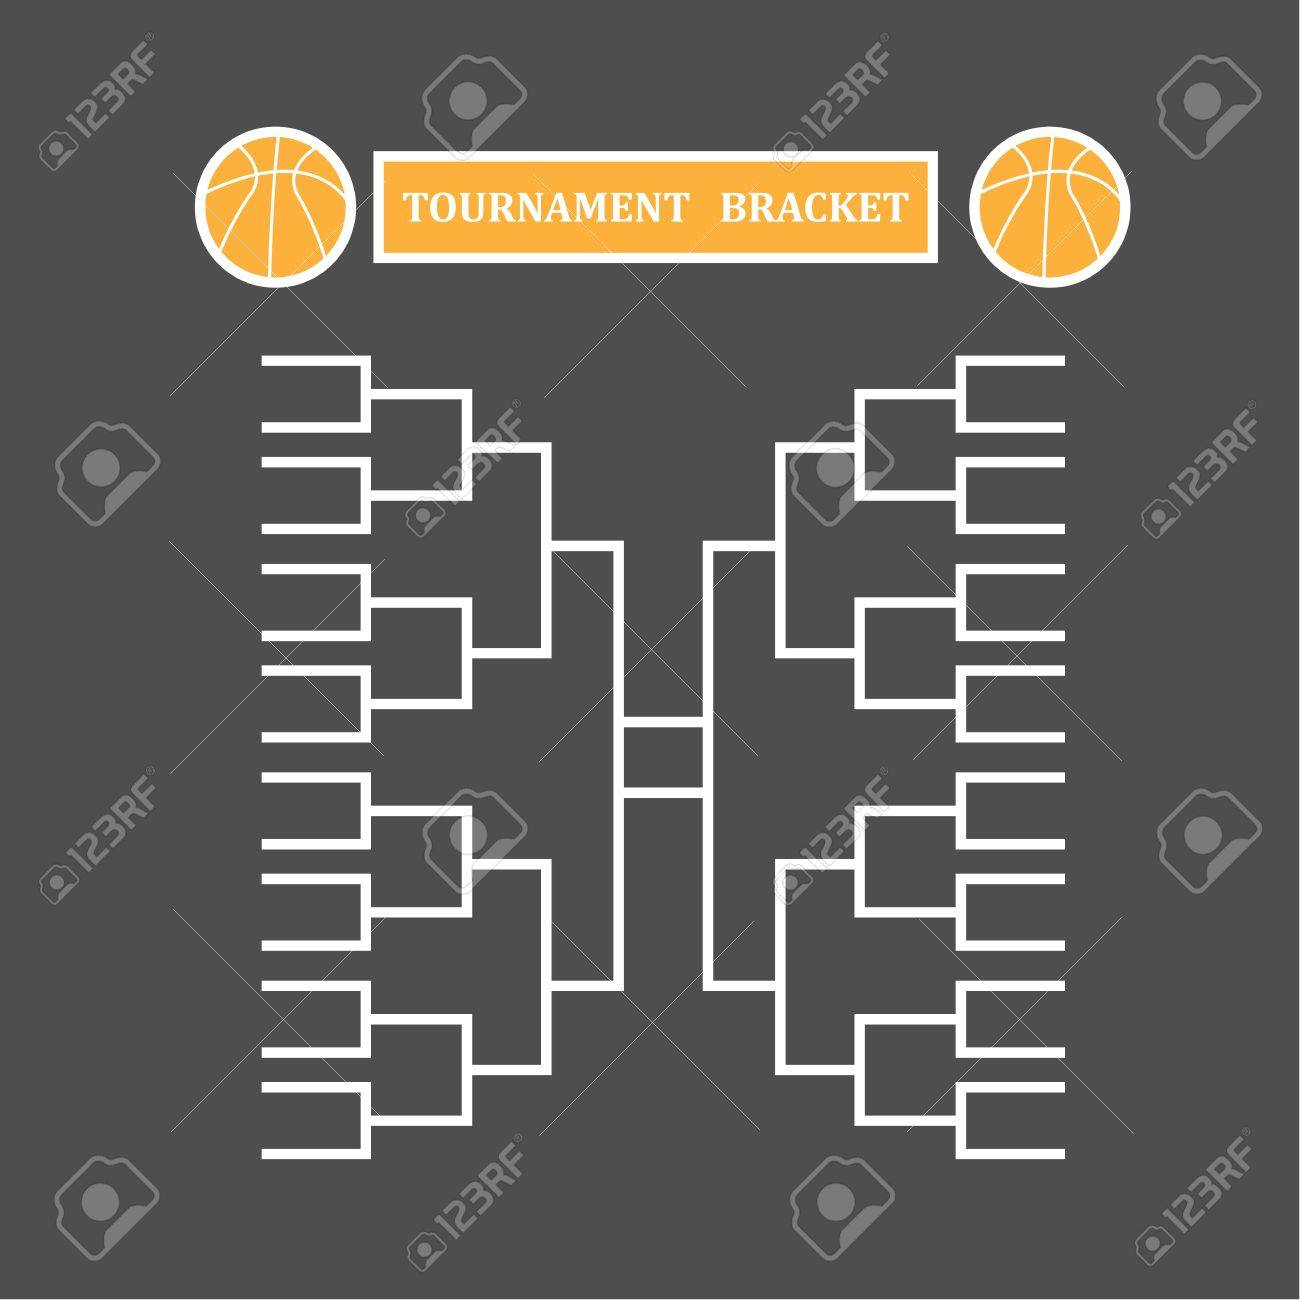 blank sport tournament bracket on background vector illustration